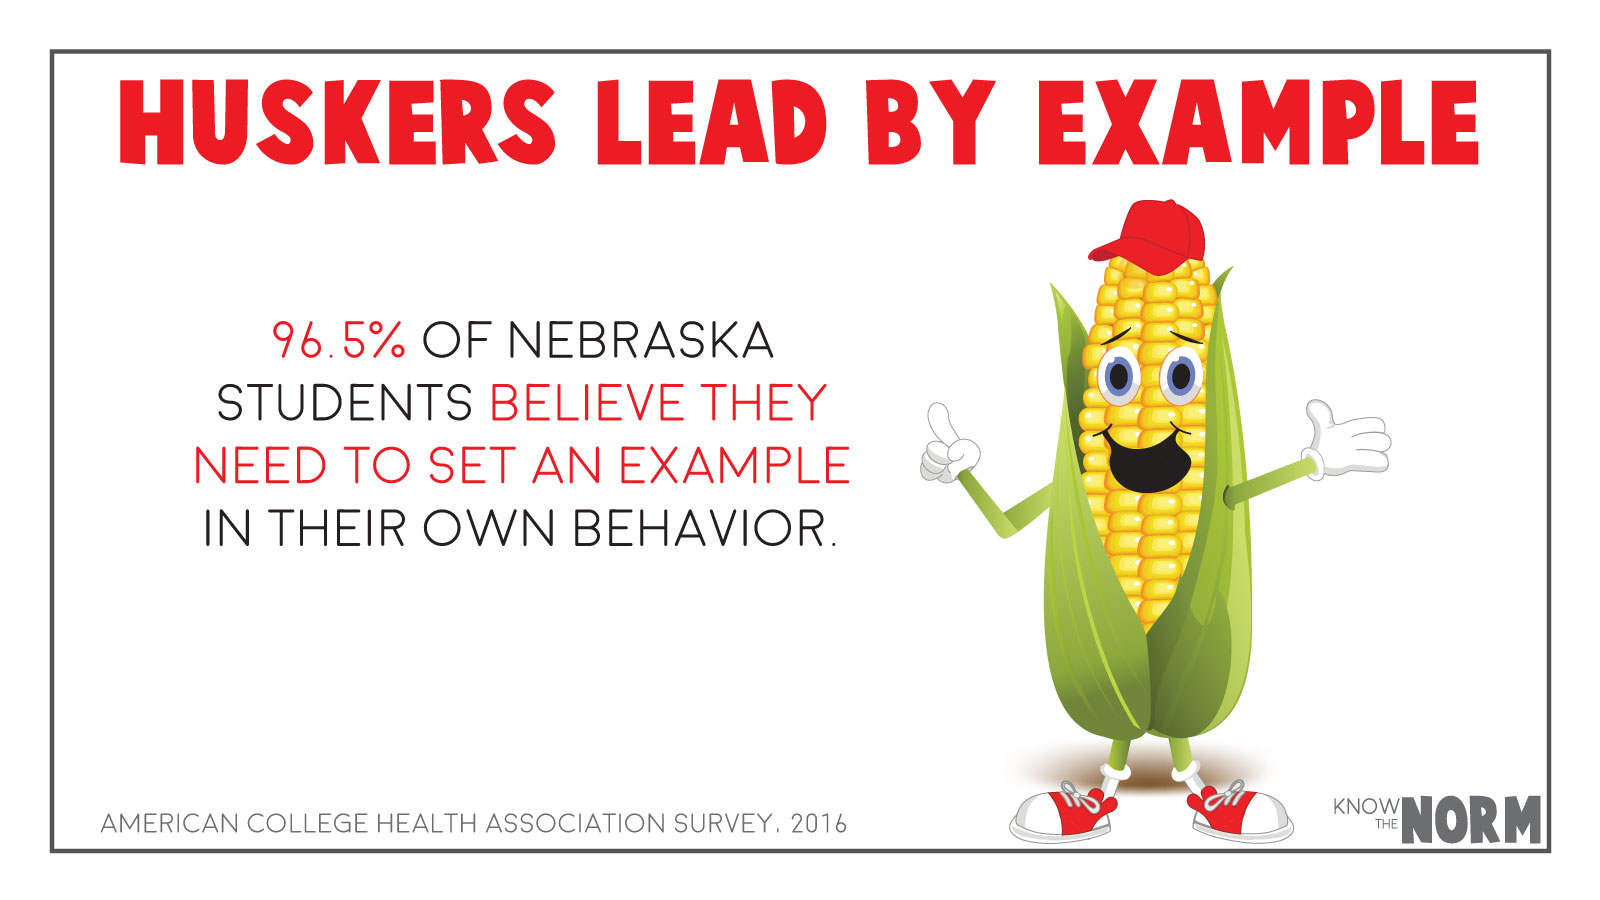 Huskers lead by example